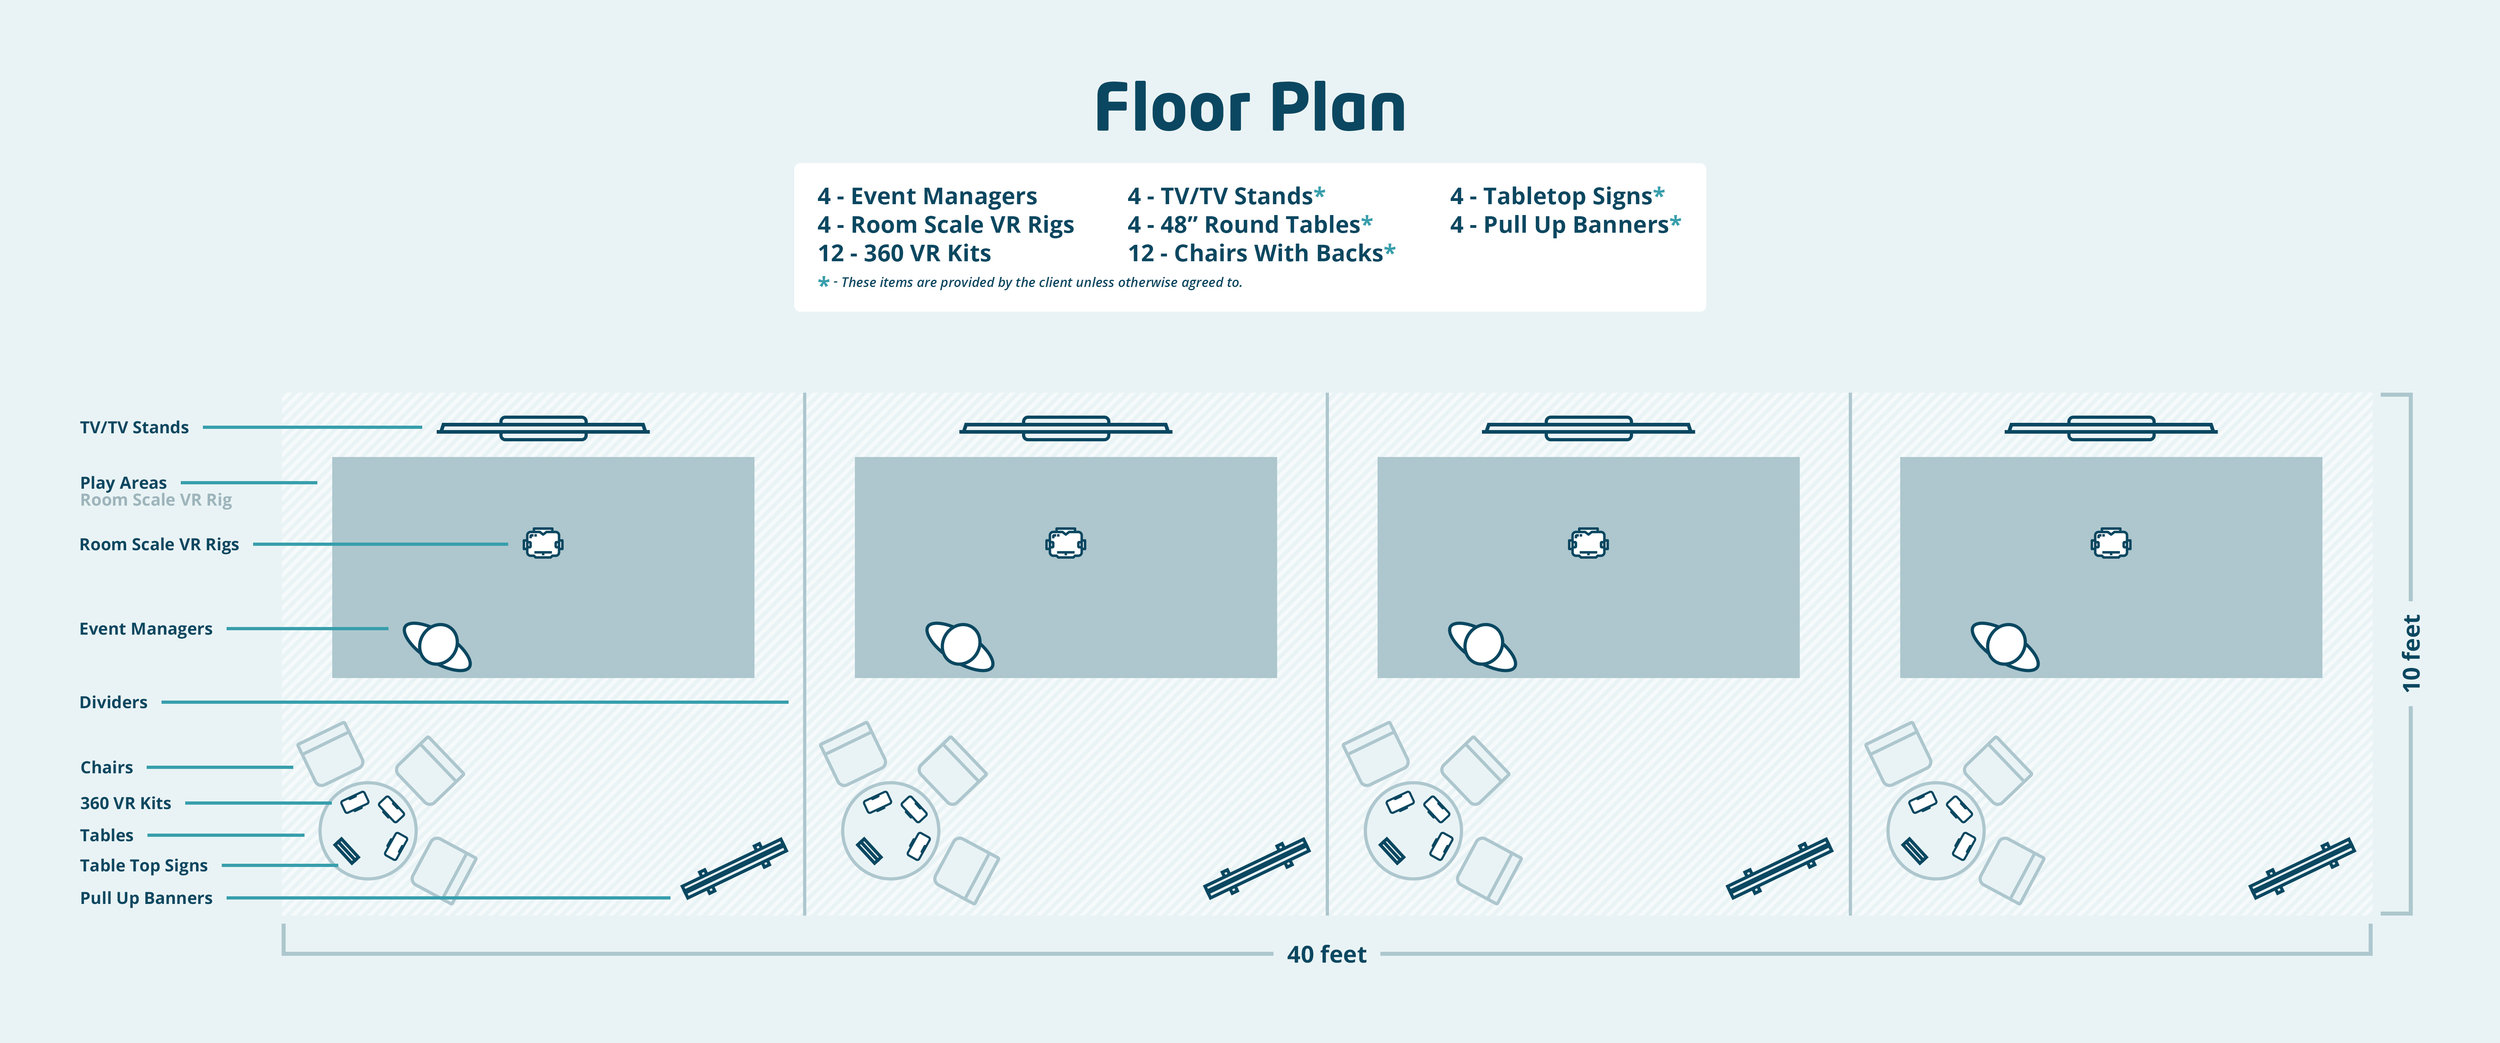 Floor_Plan_-_04_-_Four_(4)_Event_Managers_+_Four_(4)_Room_Scale_+_Nine_(9)__360s.jpg